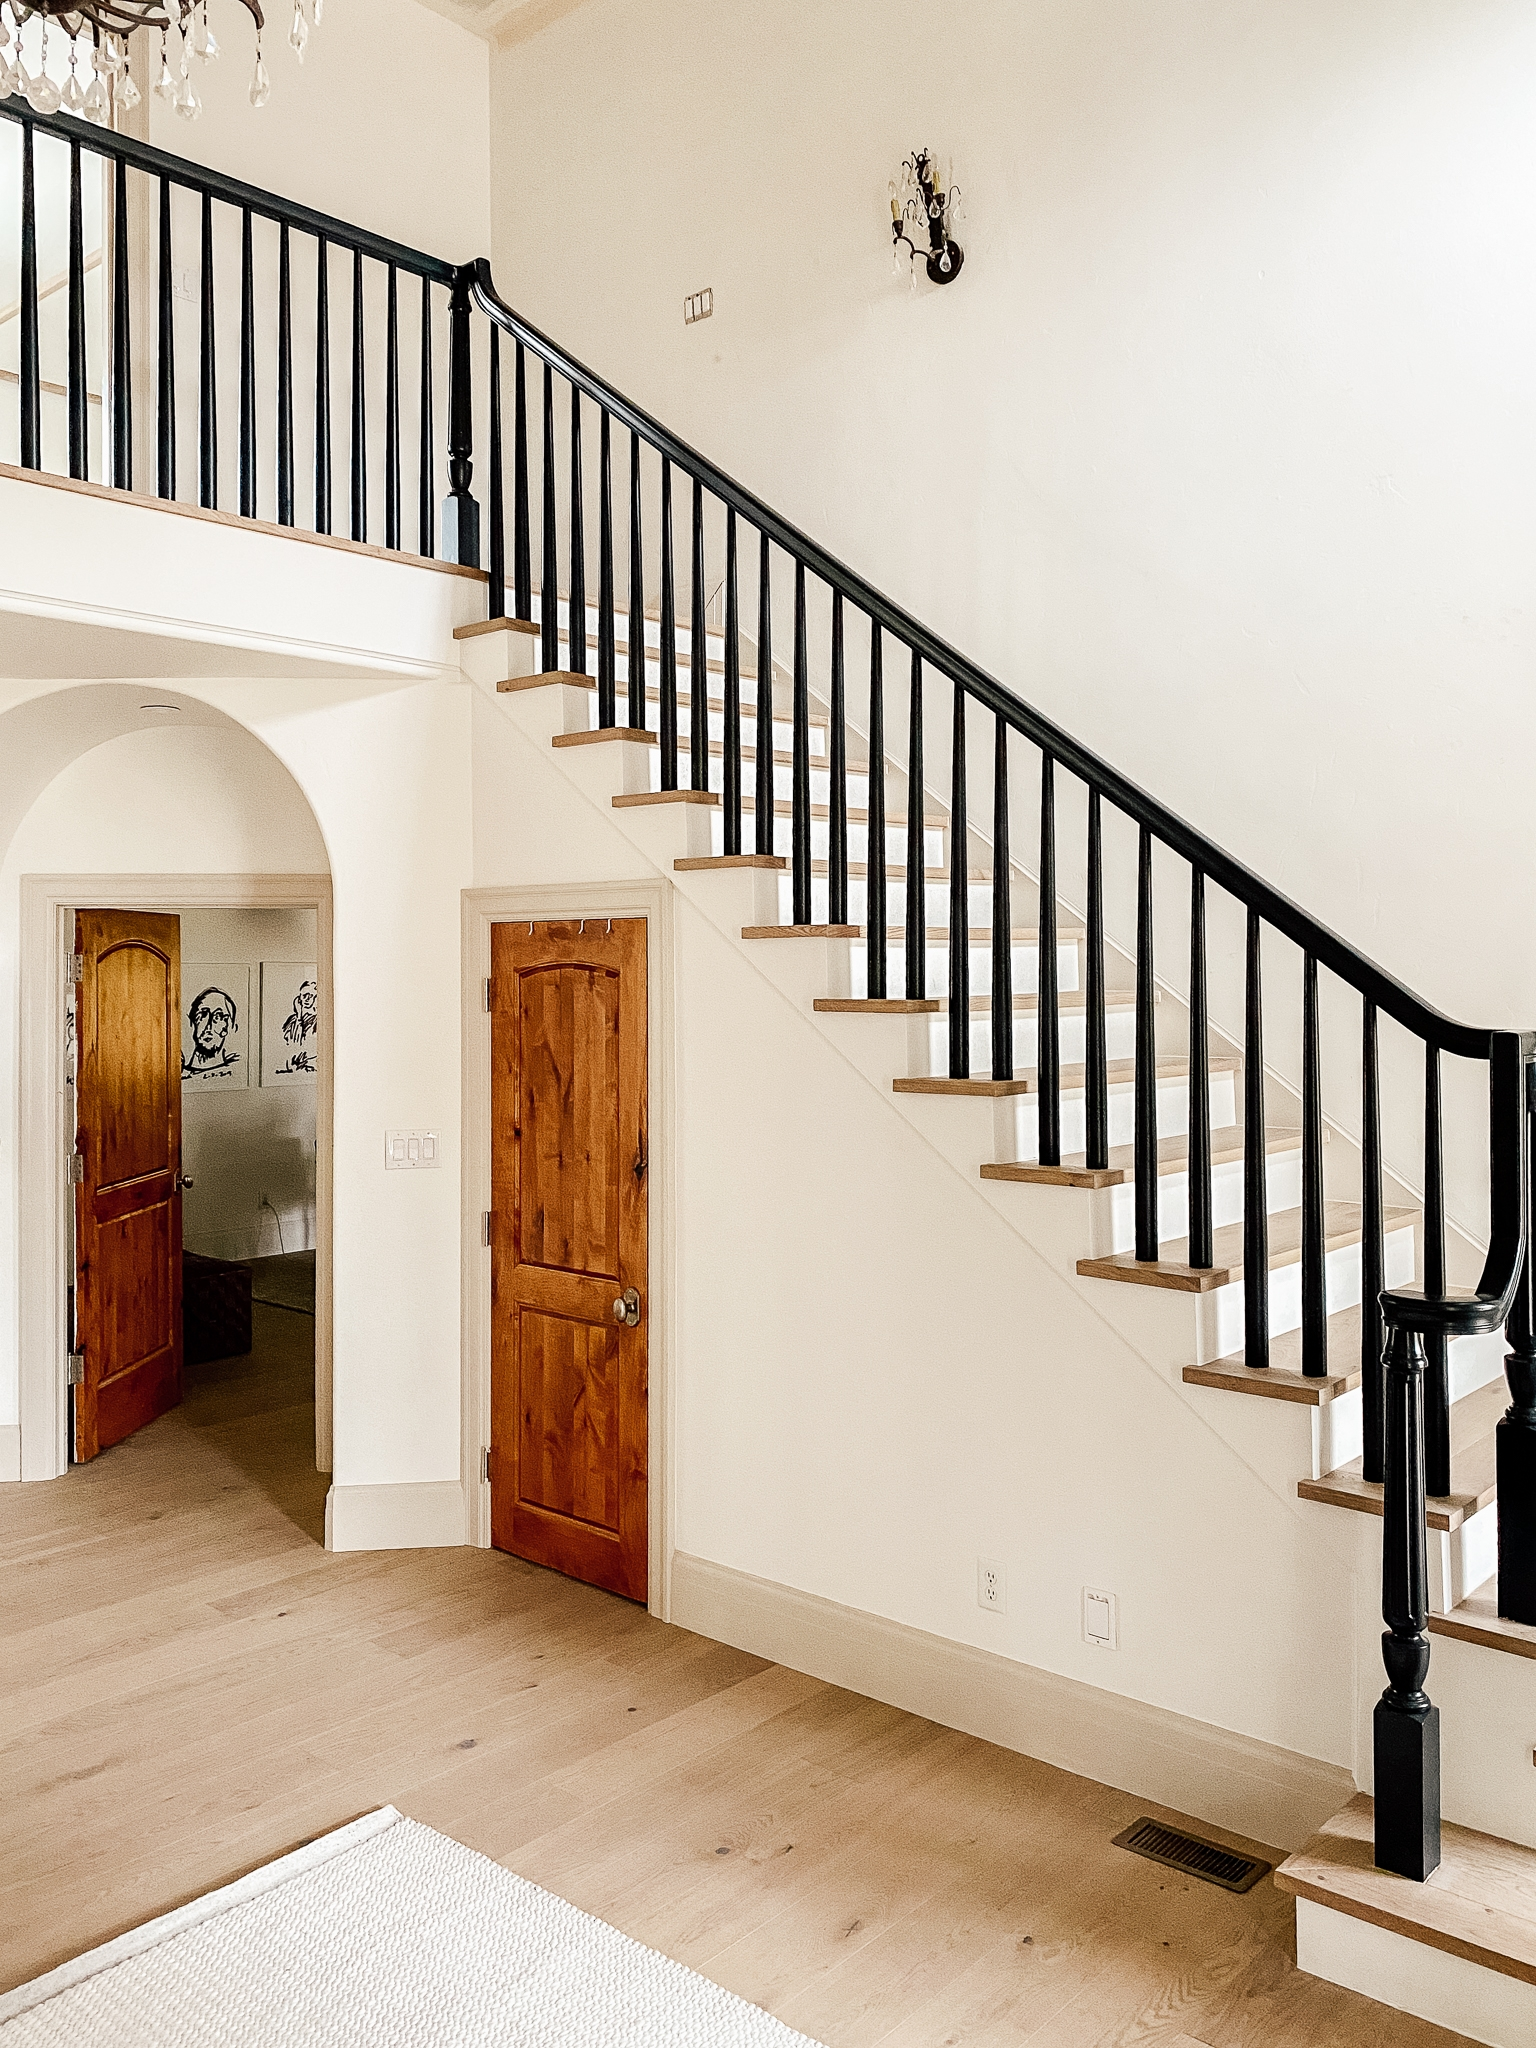 How We Completely Updated Our Stair Railings By Only Swapping Out | Wooden Banisters And Railings | Stairwell | Small | Industrial | Balcony | Dark Walnut